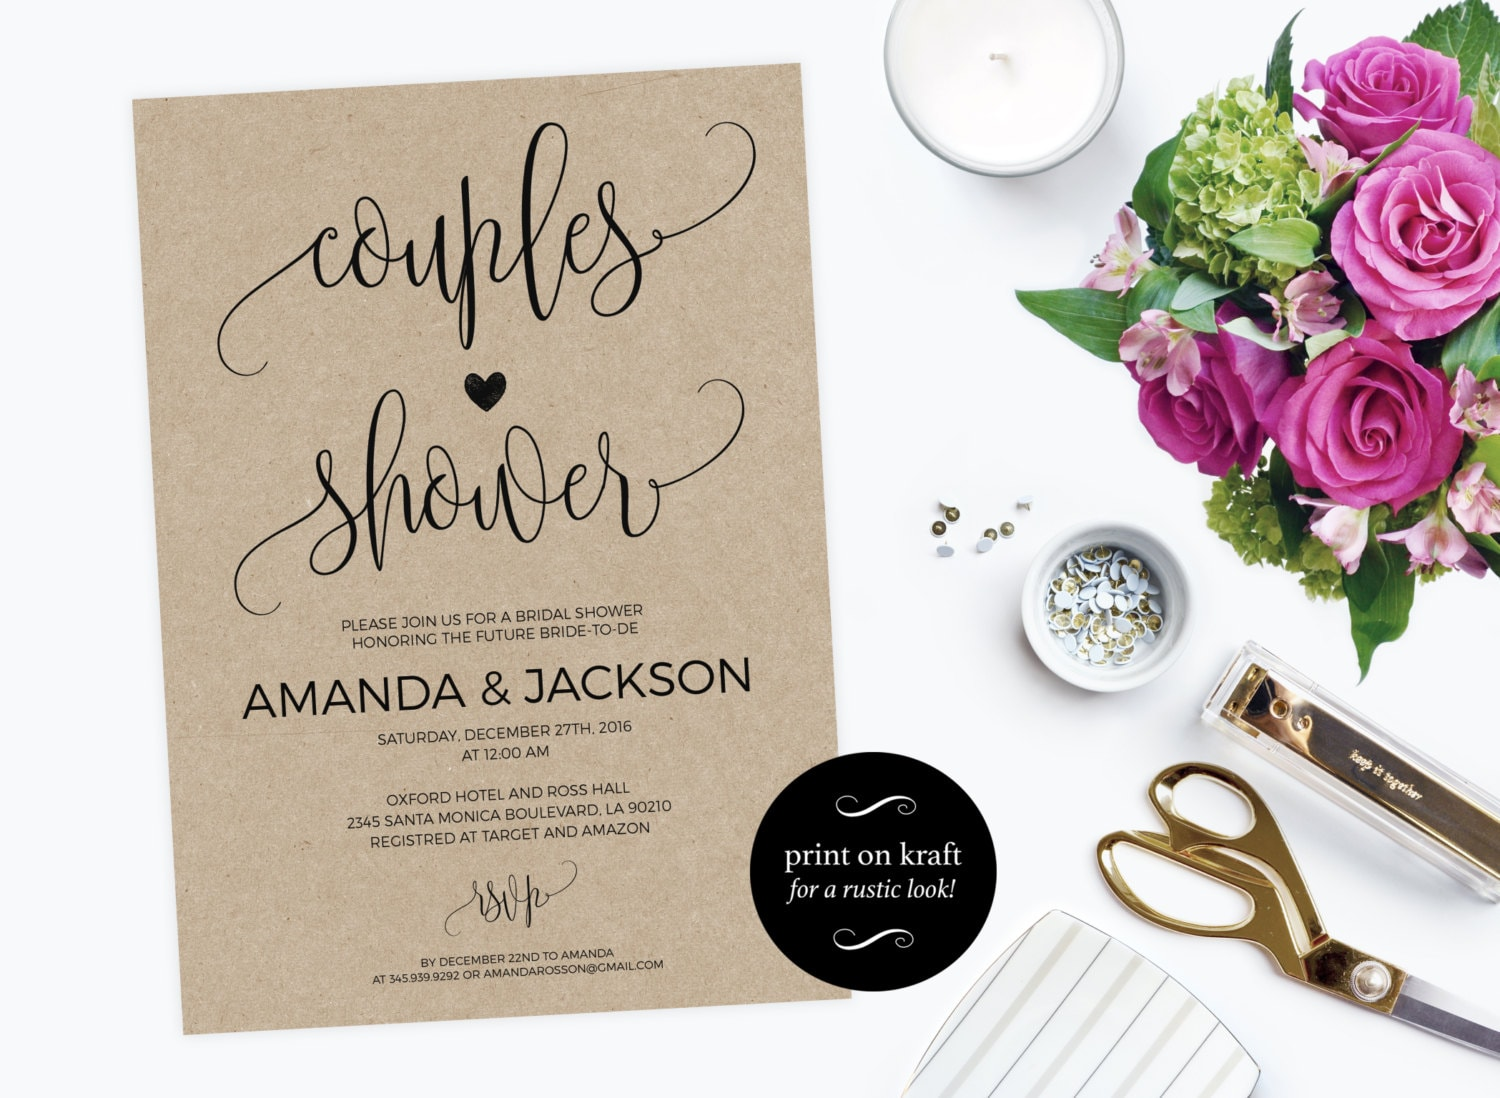 Printable Couples Shower Invitation  Couples shower invitation printable  Wedding Shower Invitation PDF Instant Download  WDHOO82